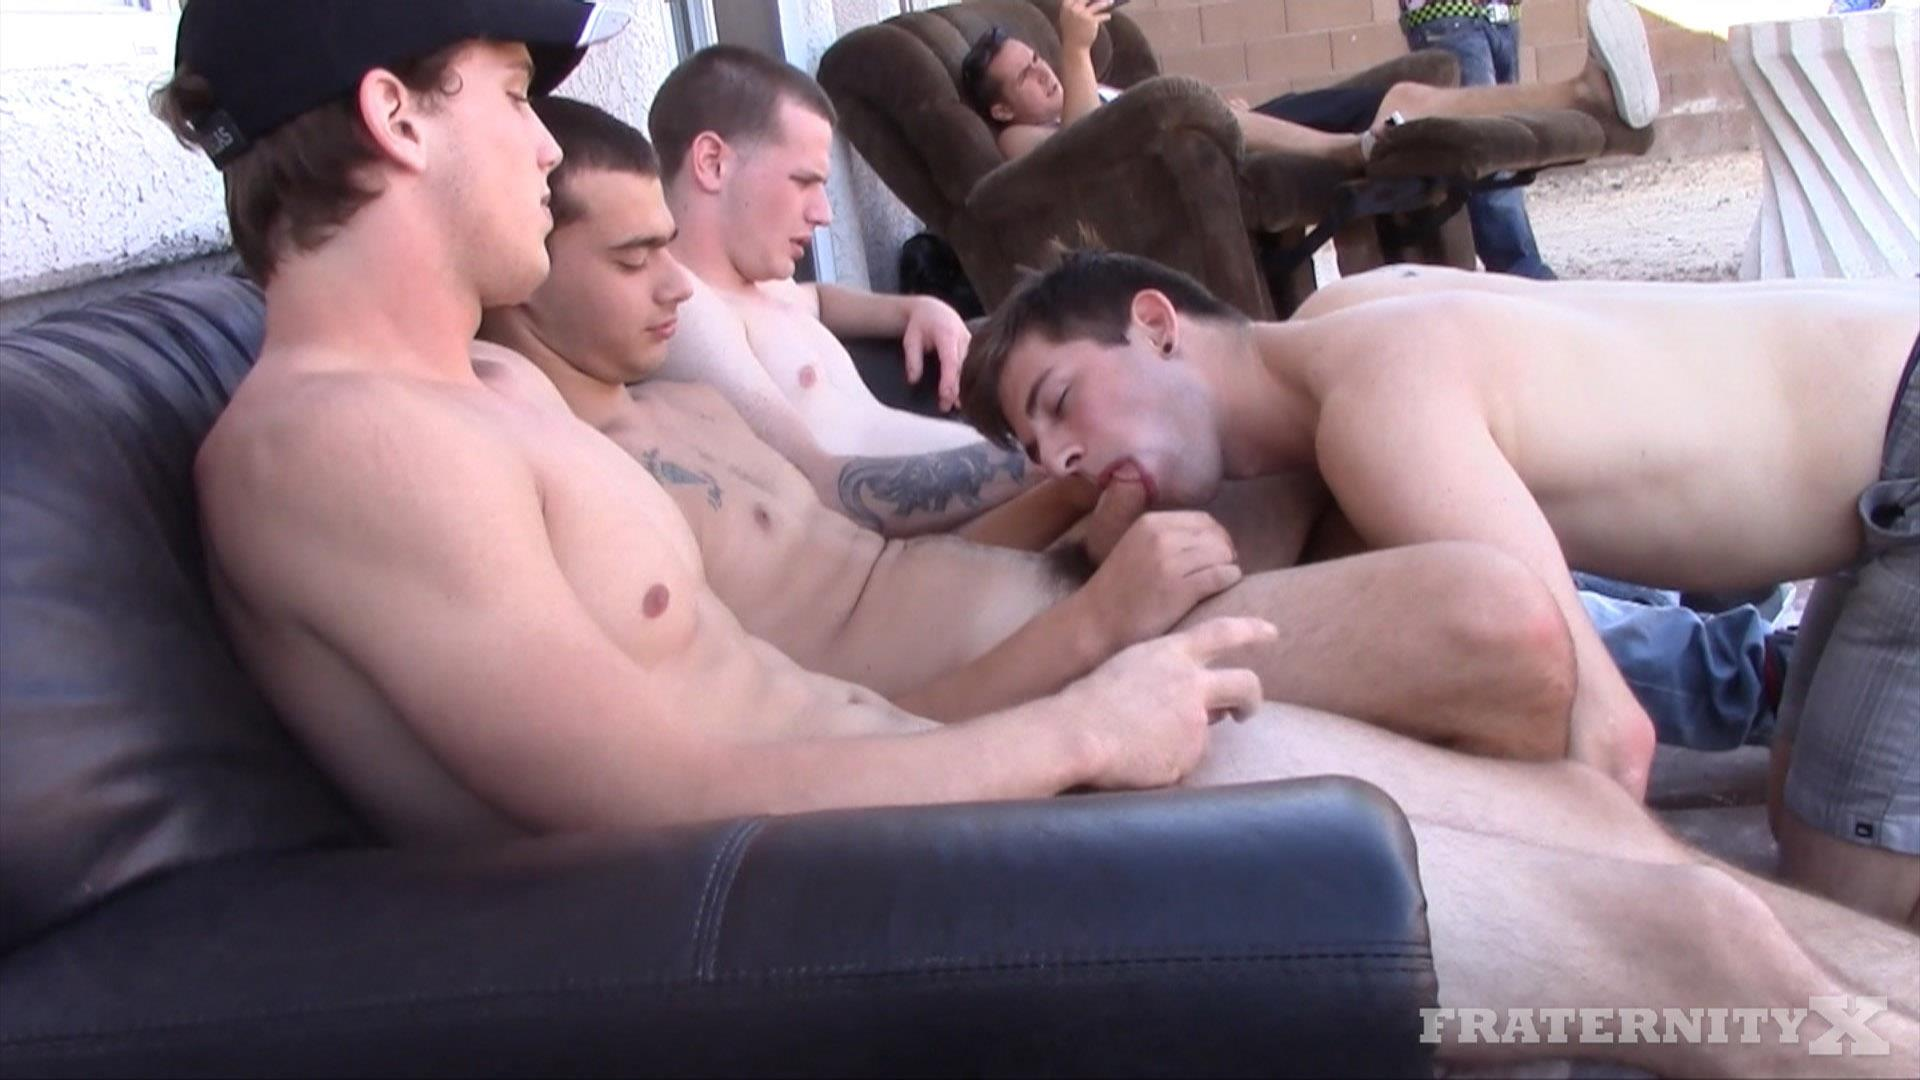 Naked college guy in public gay dudes have